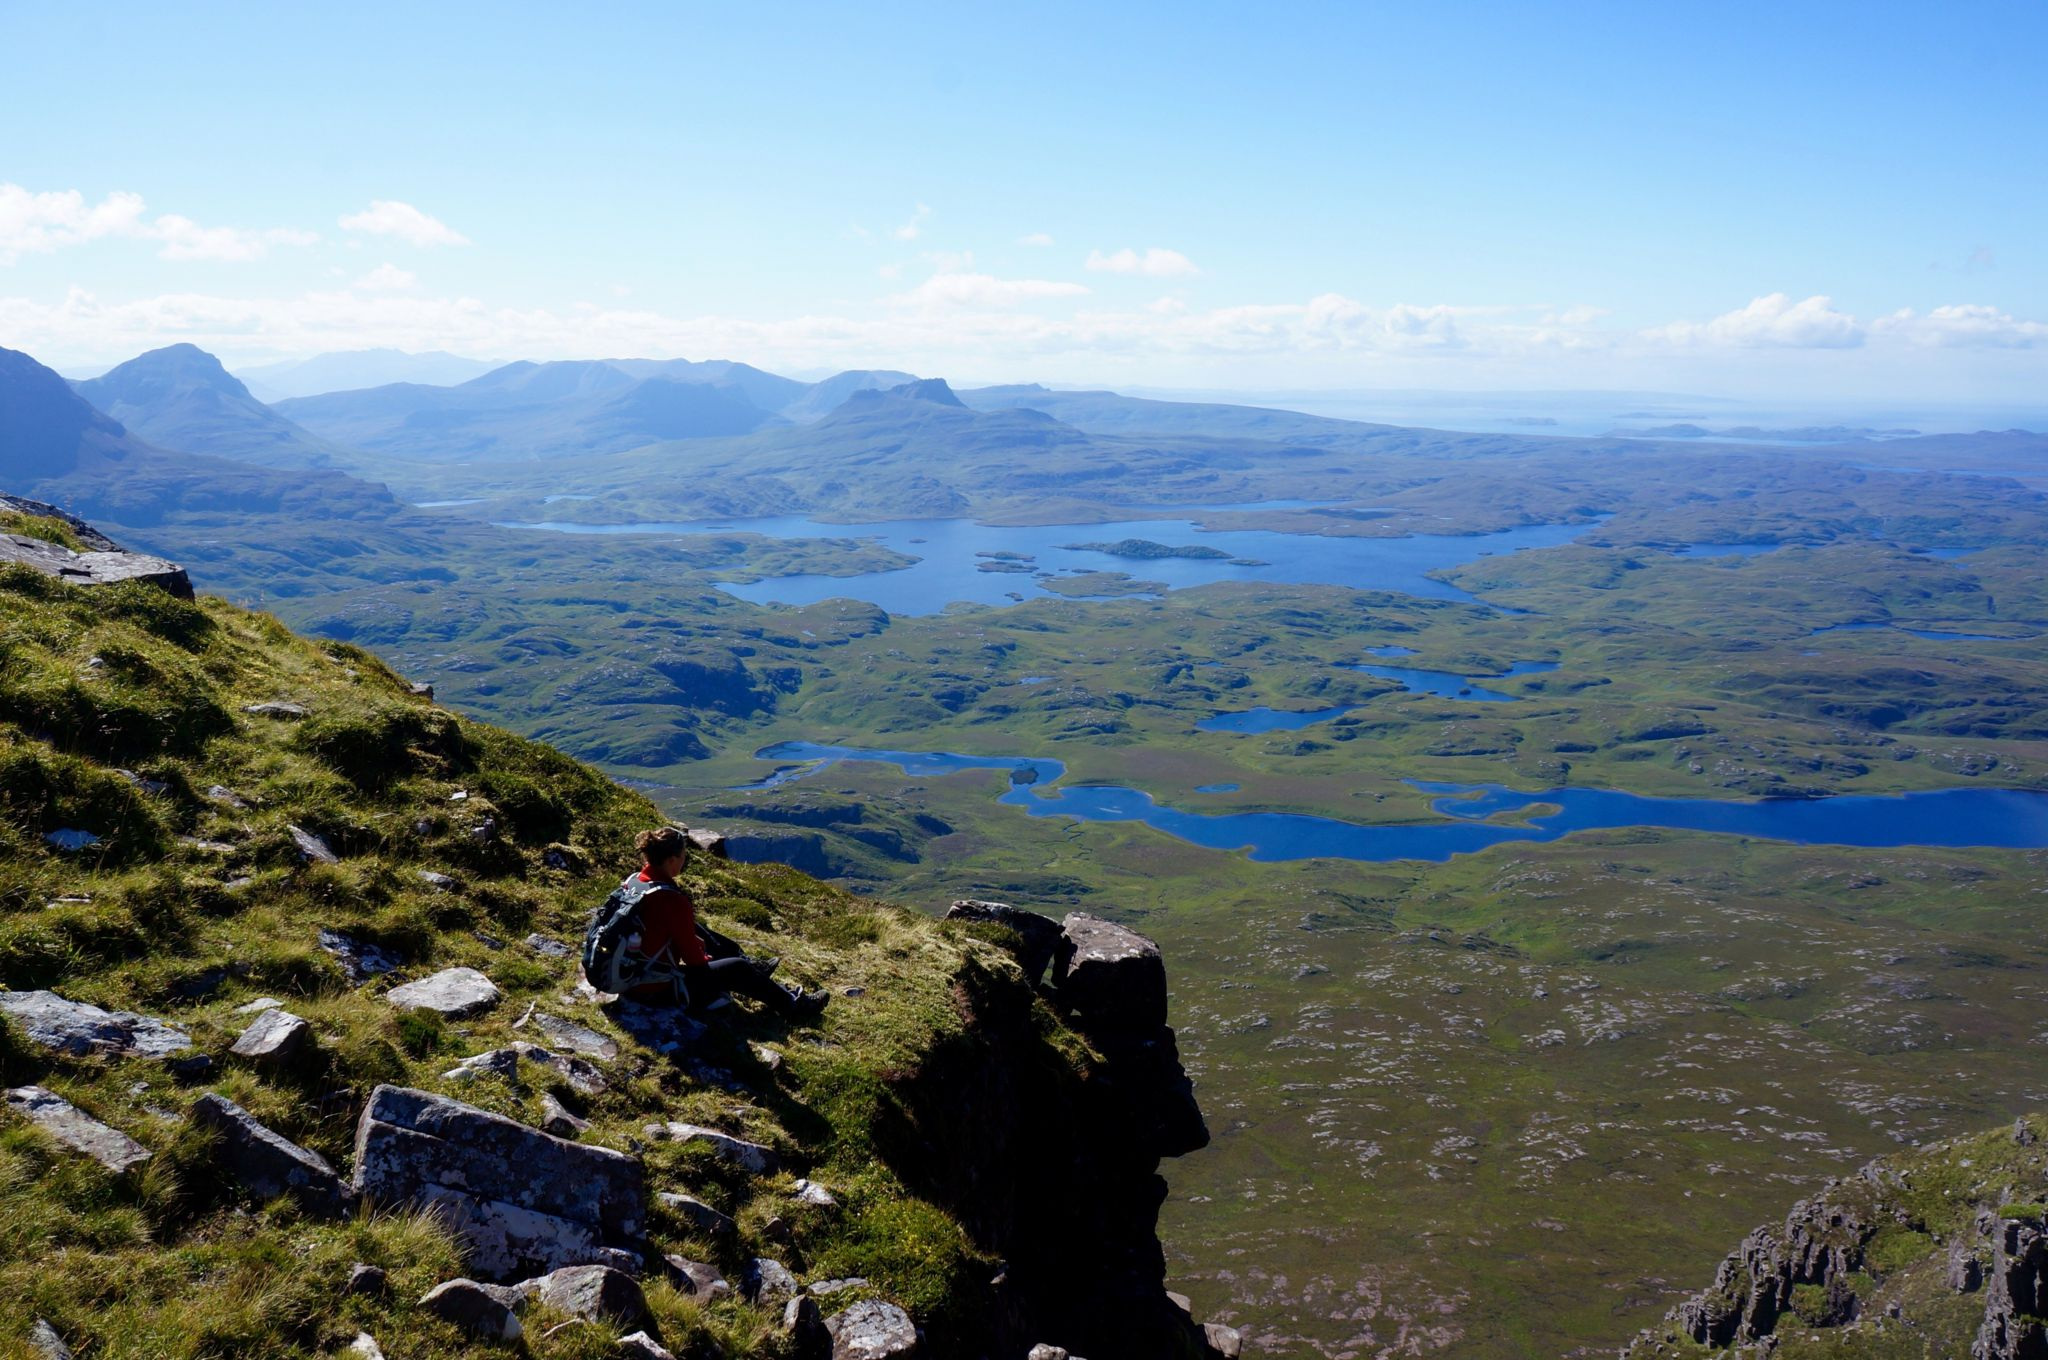 View from the top of Suilven looking South.